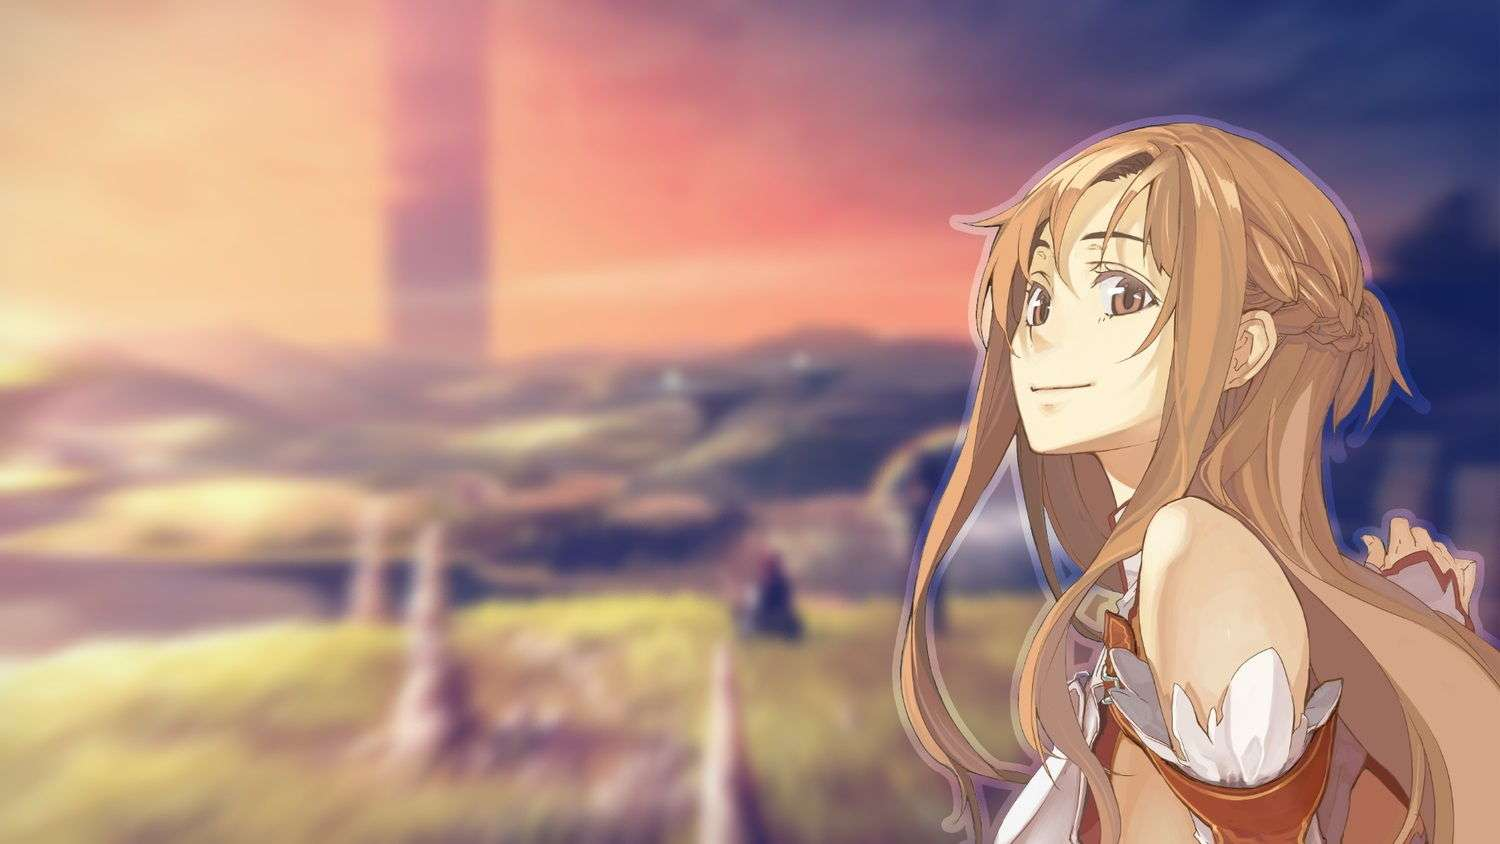 Sword Art Online Anime Wallpaper 009